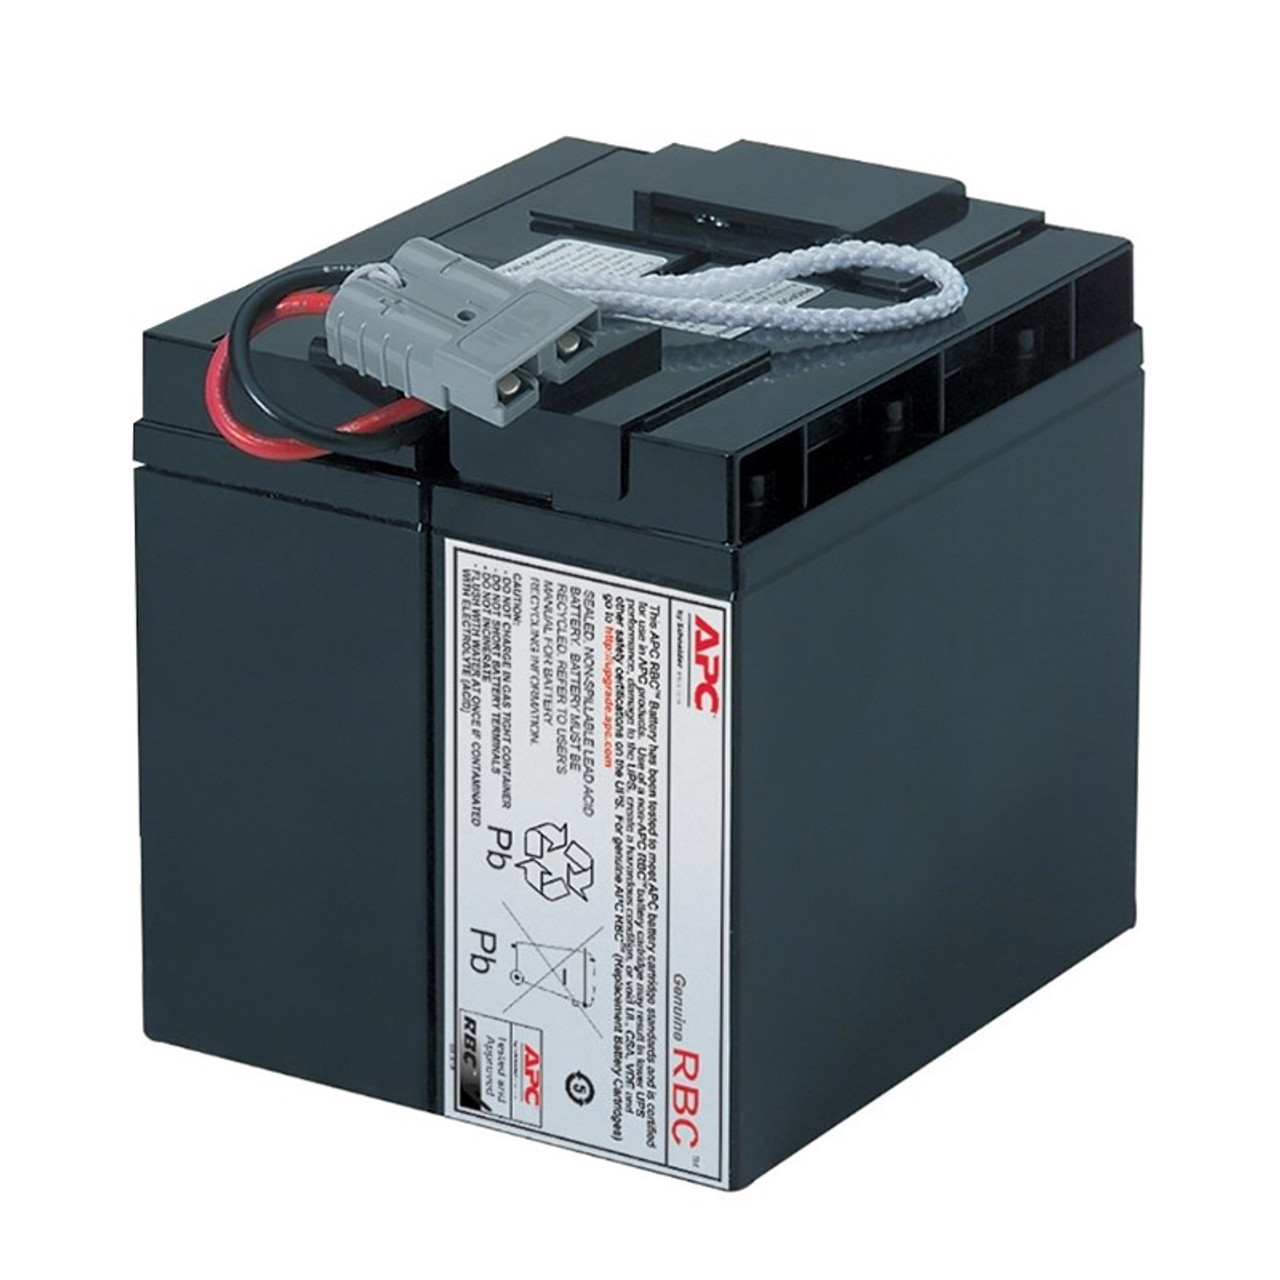 Image for APC Replacement Battery Cartridge #55 UPS Battery CX Computer Superstore